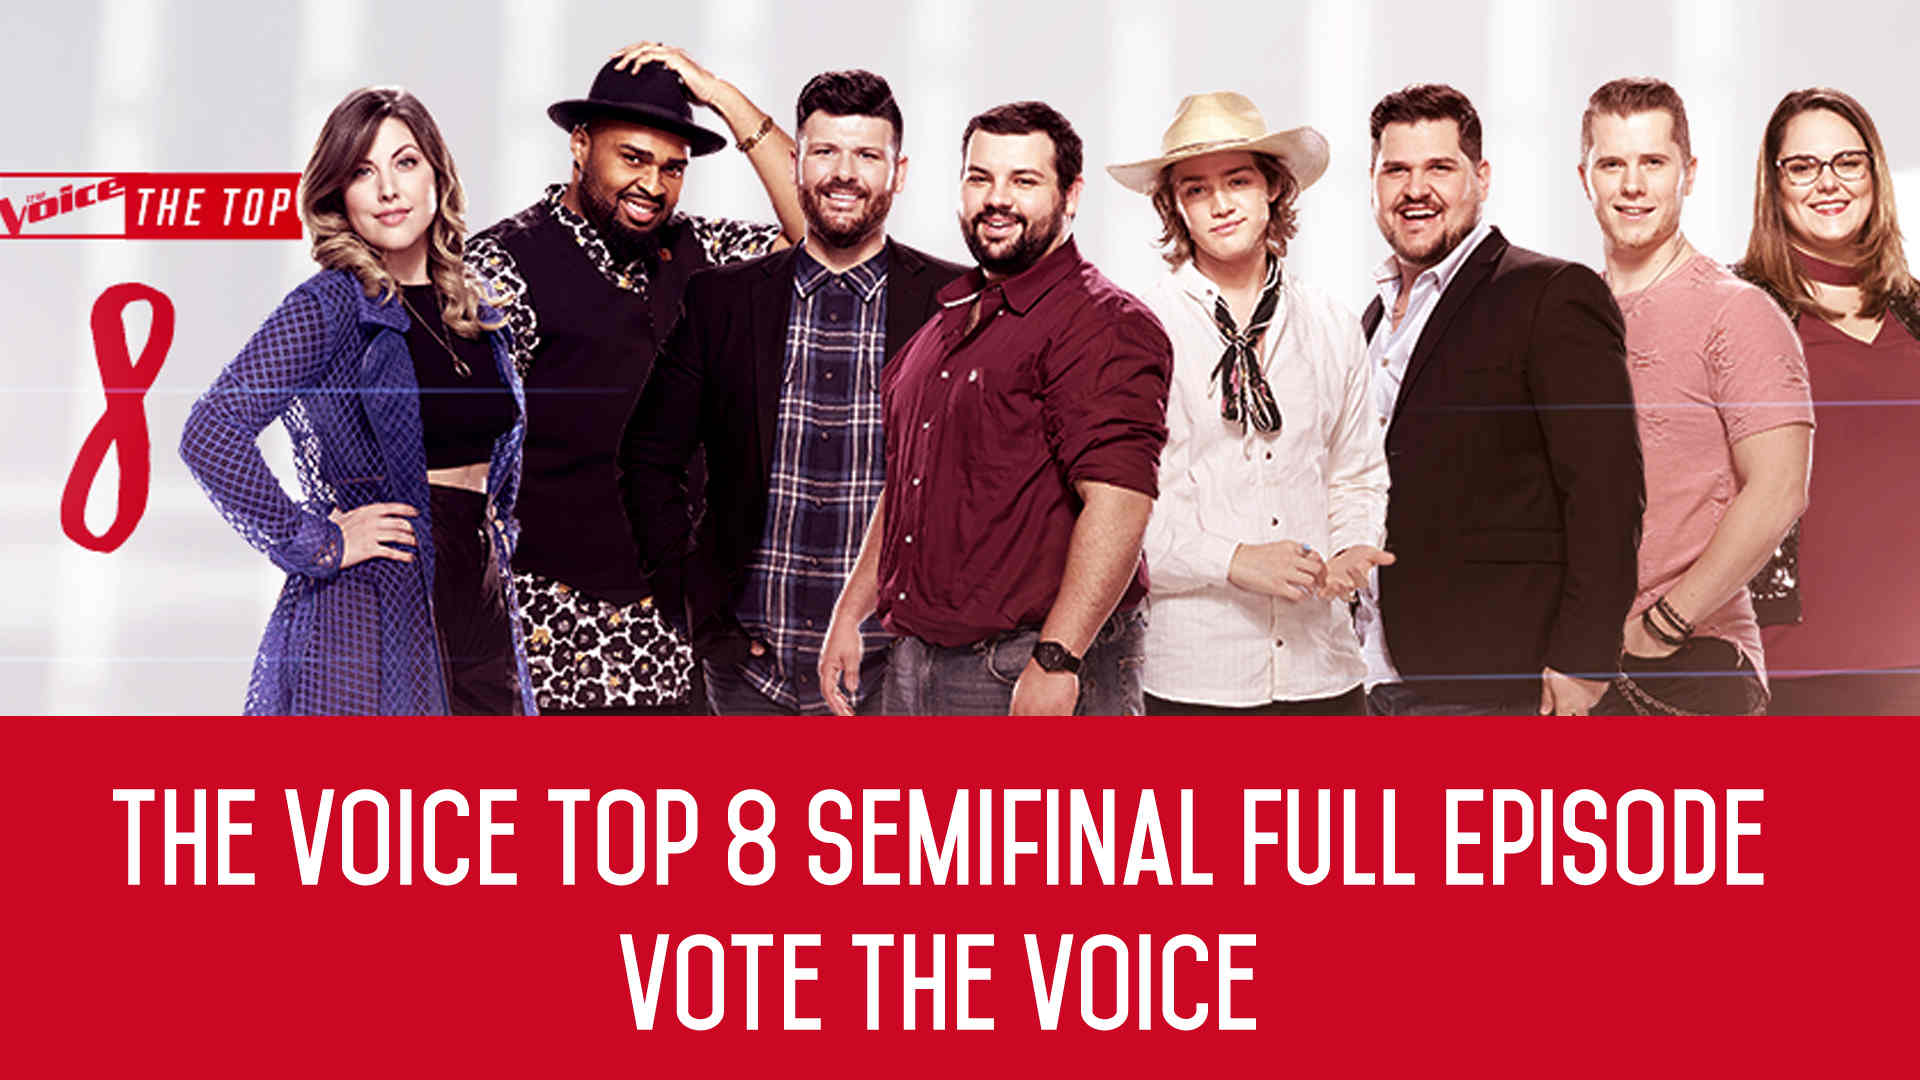 Watch The Voice 2019 Top 8 (Semifinals) Full Episode on 13 May 2019 With Voting App tonight